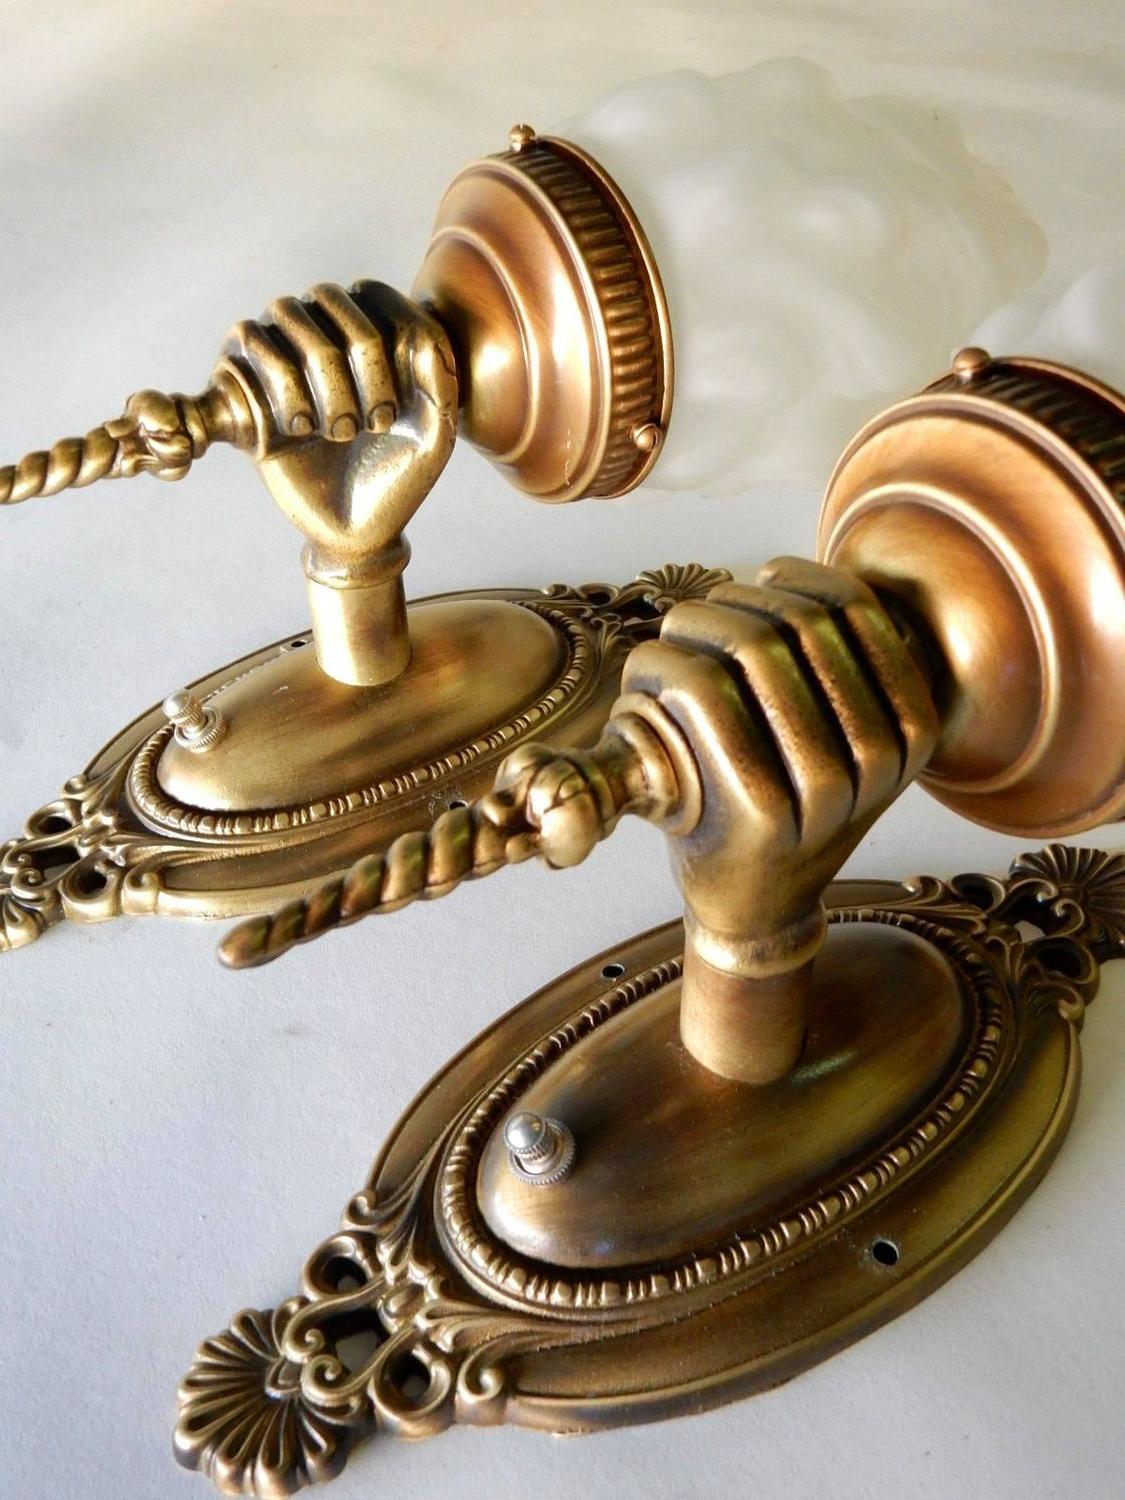 Wall Sconces Antique Brass : Pair Antique Brass Hand Torch Wall Sconce Lamps at 1stdibs